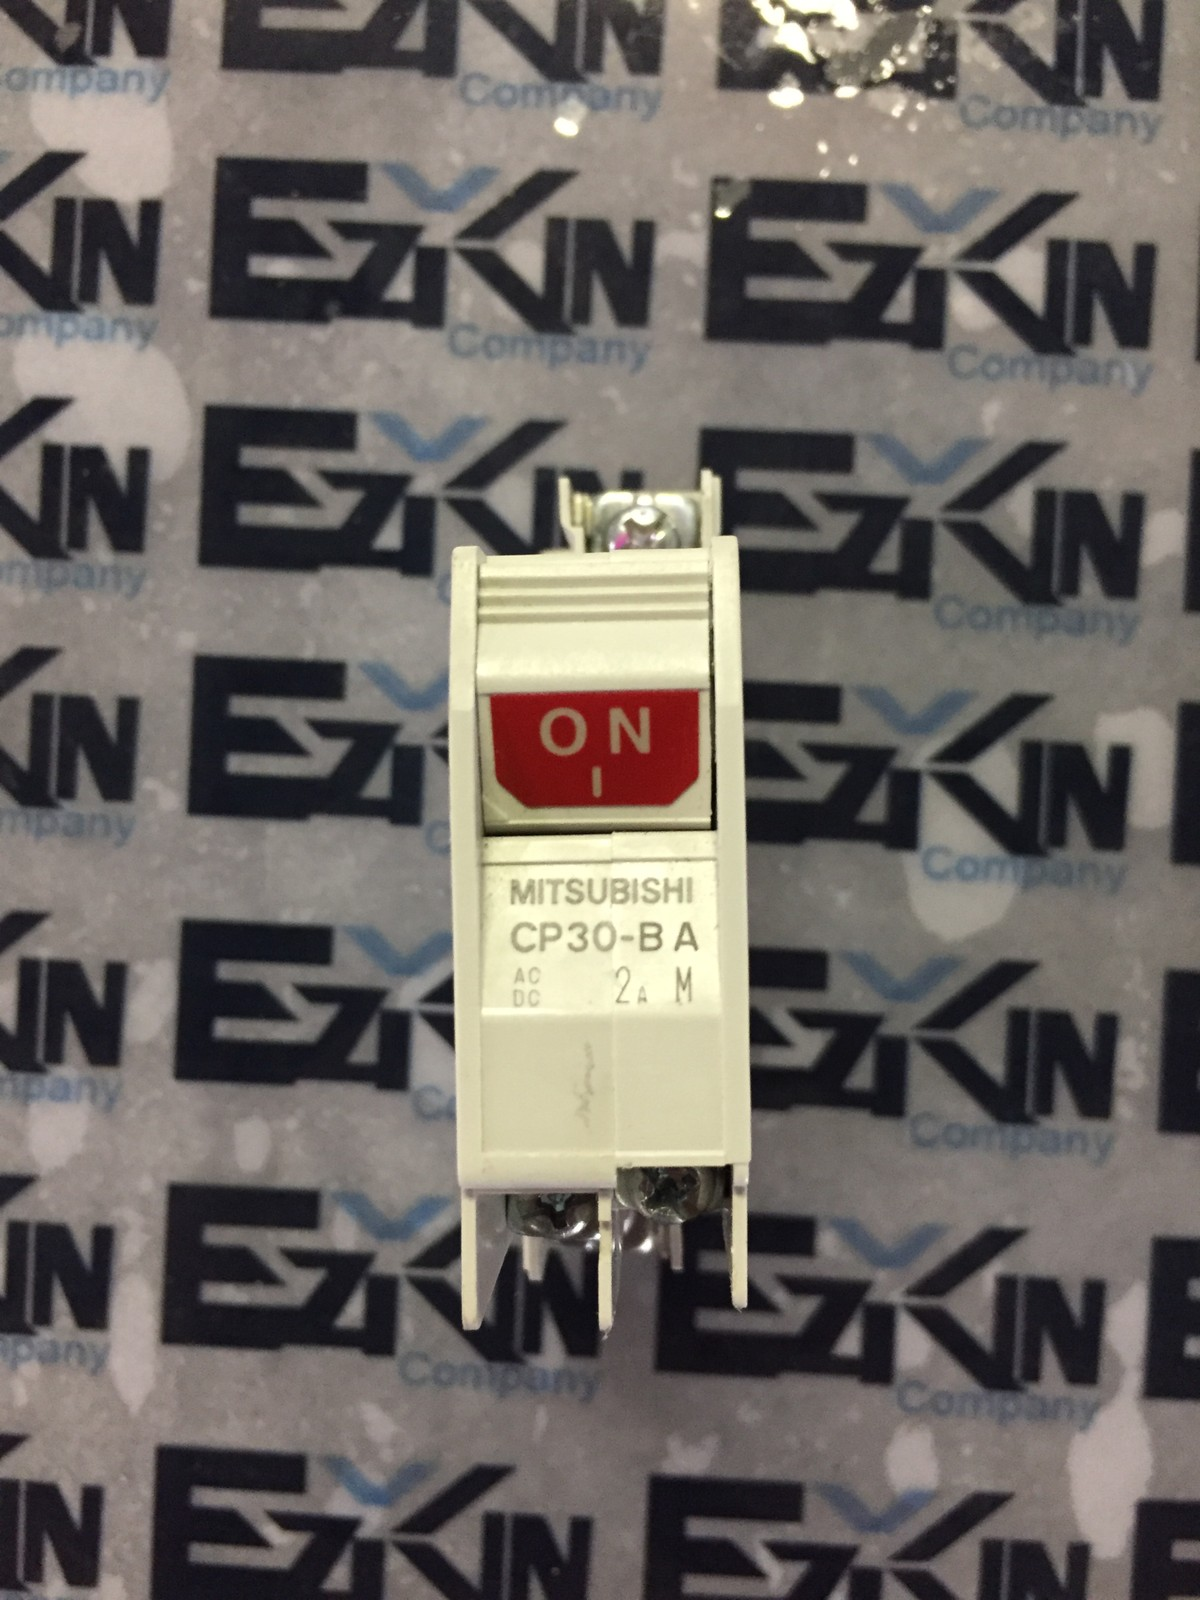 MITSUBISHI CP30-BA CIRCUIT PROTECTOR 2A 220VAC POLE 1 W/AUX SWITCH